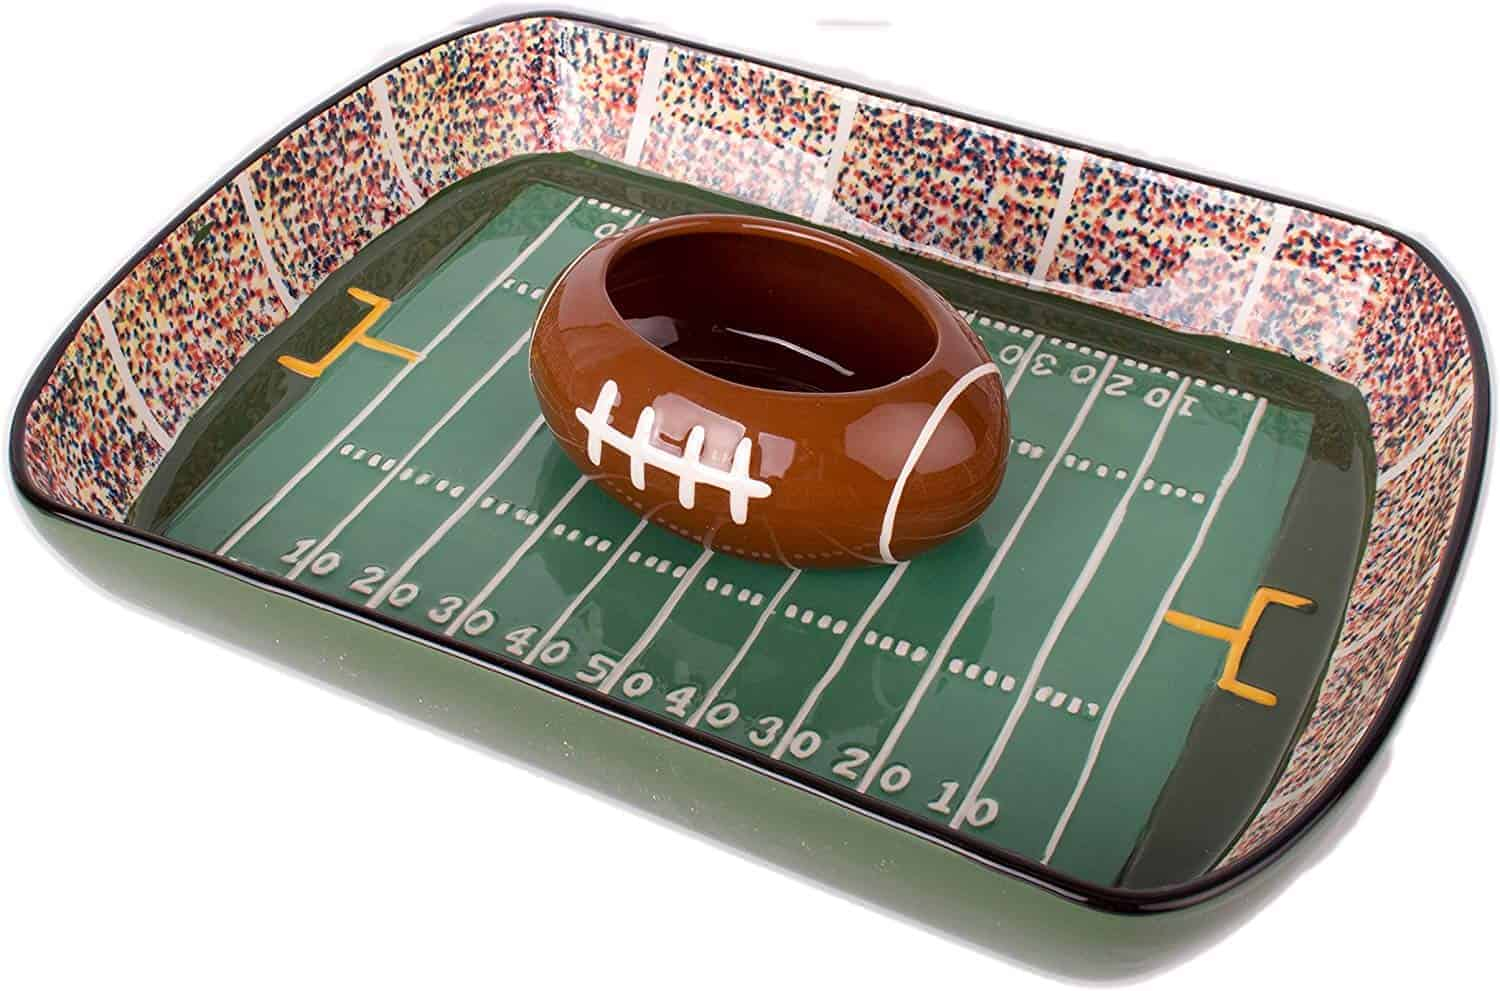 football stadium chip and dip sports serving set | kimschob.com